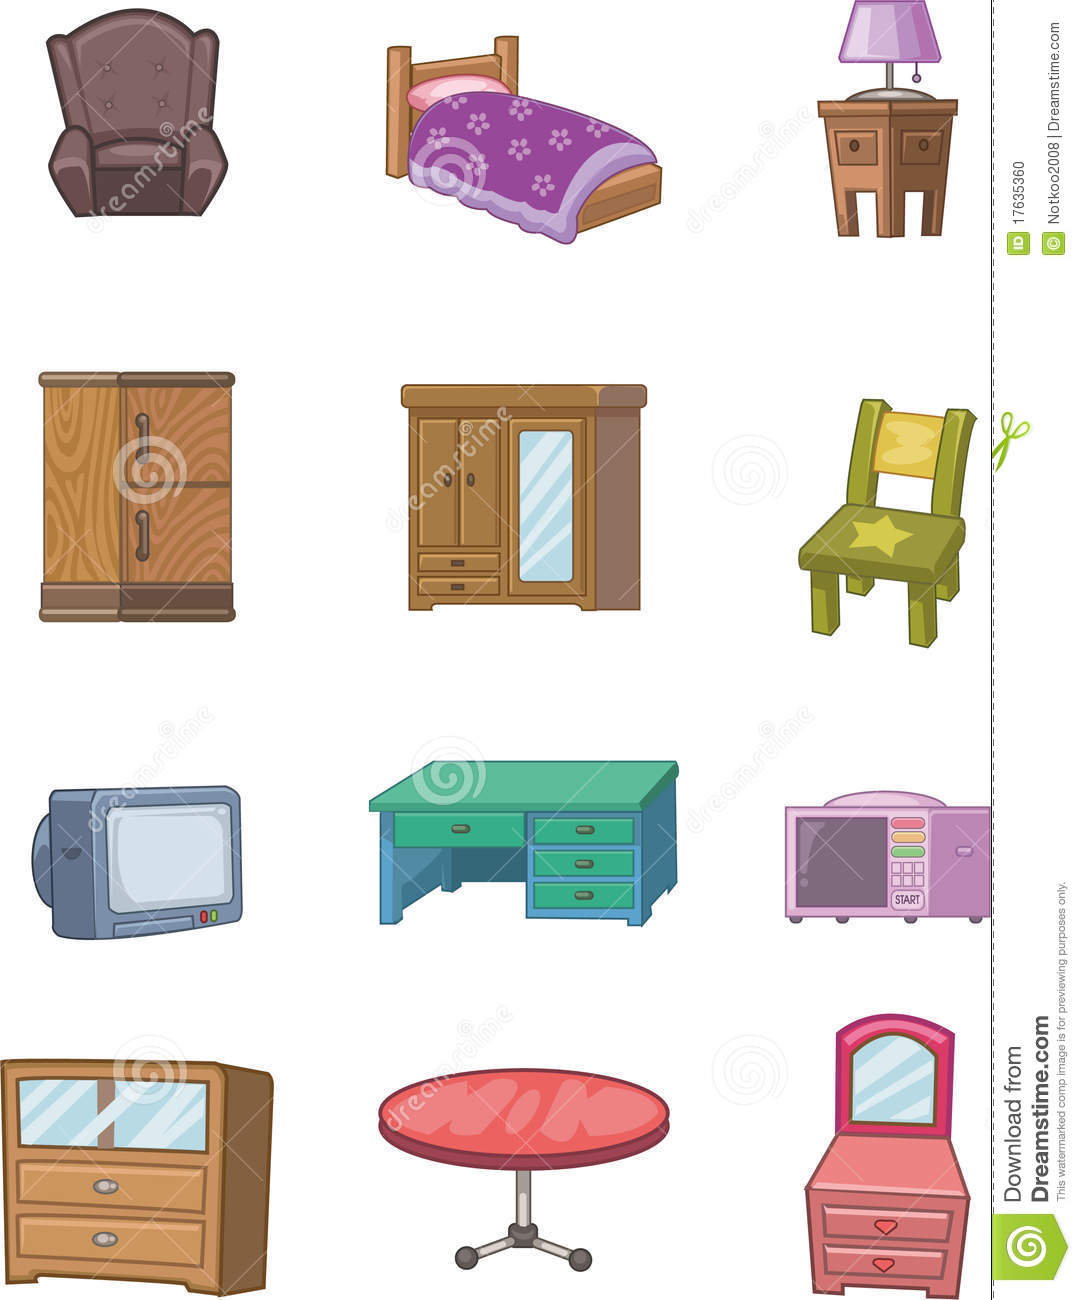 Cartoon furniture icon stock photo image 17635360 for Muebles para el hogar